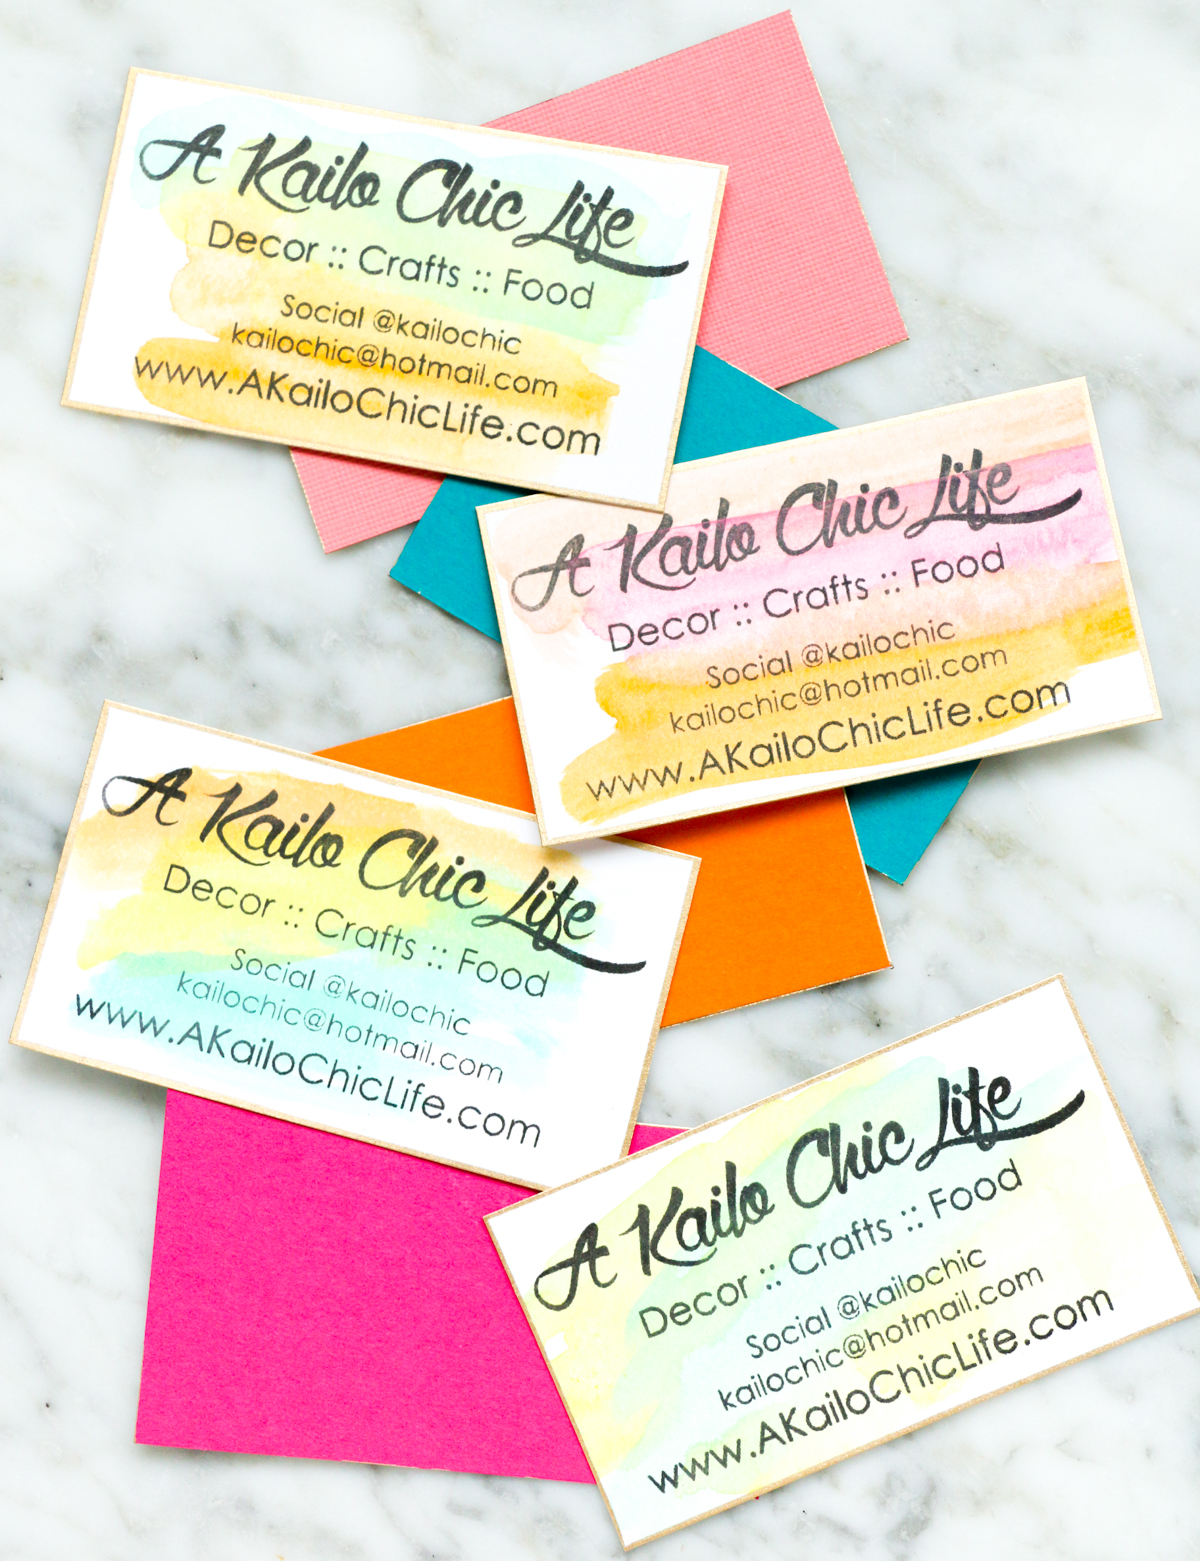 a kailo chic life: diy it  watercolor business cards